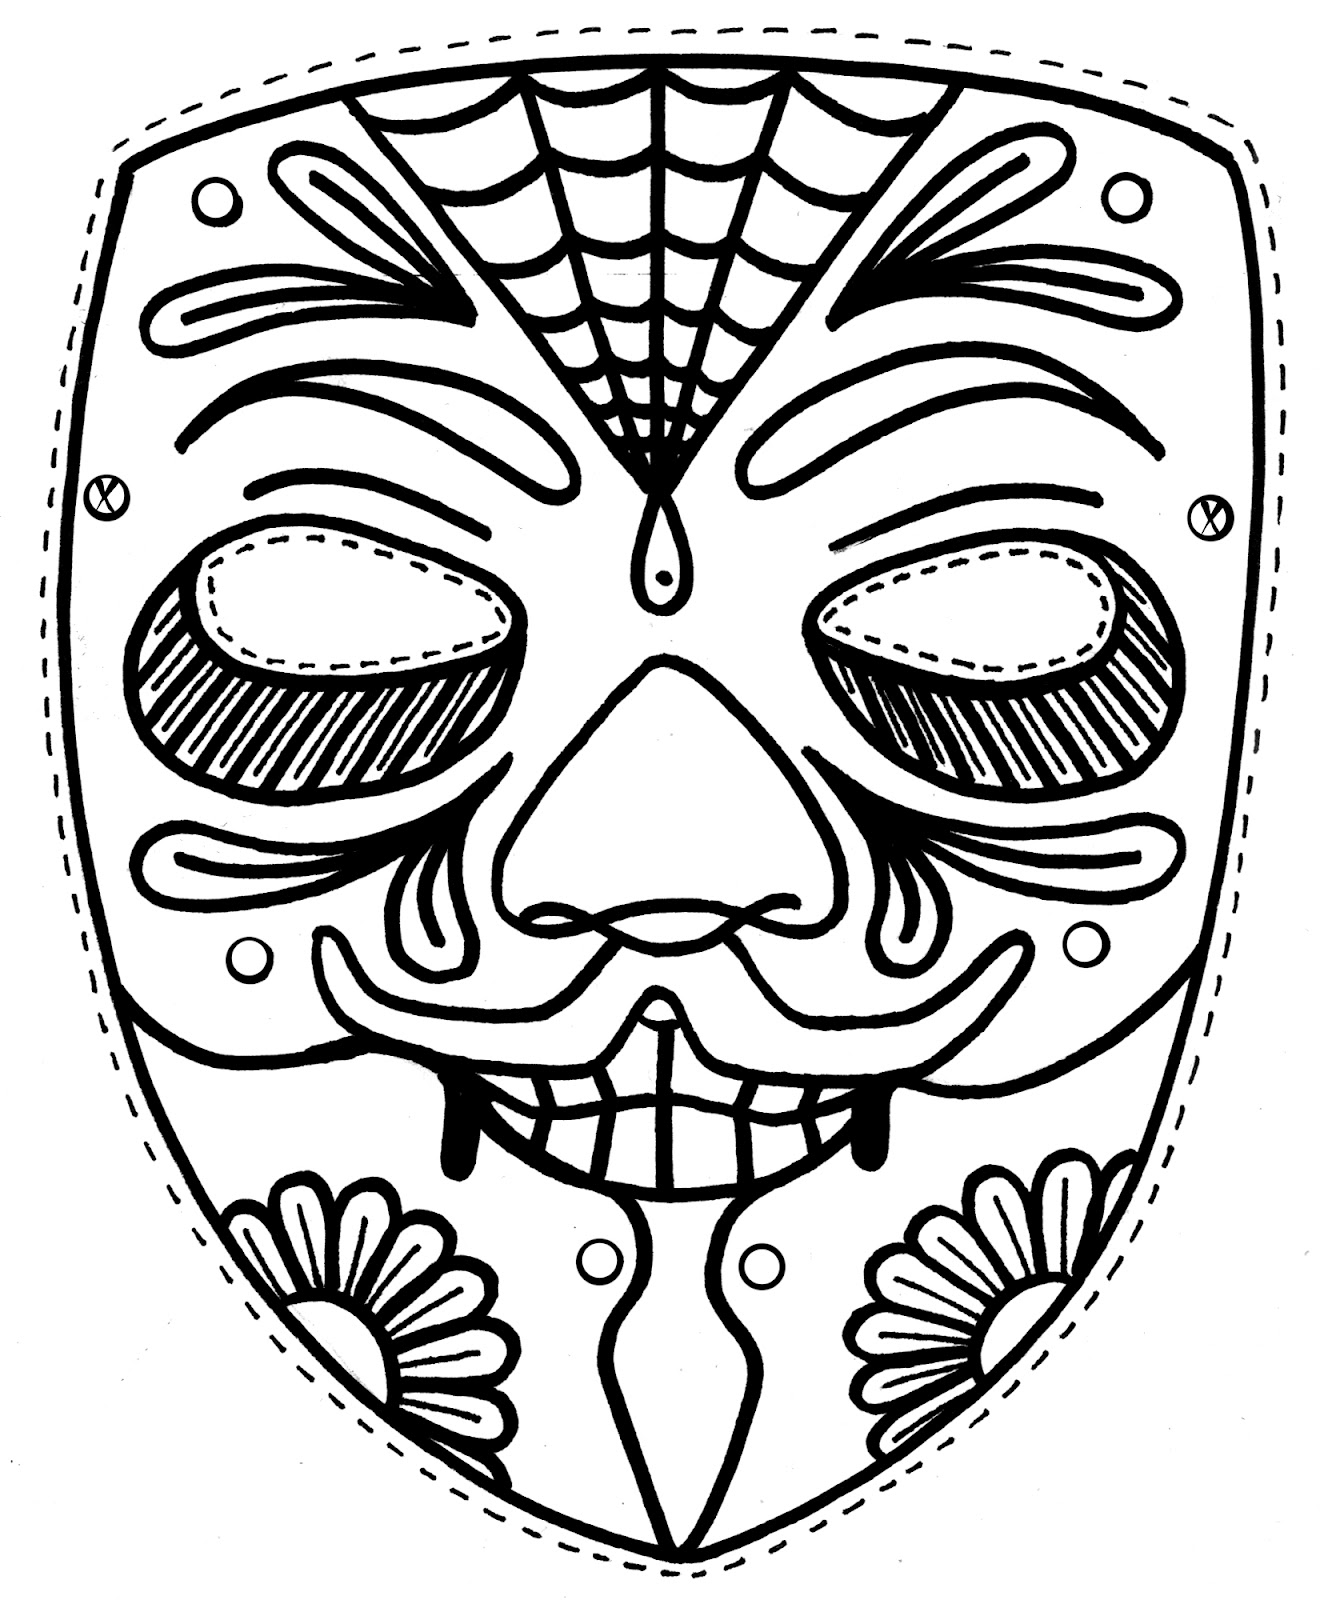 printable african masks coloring pages free printable mask coloring pages for kids african masks coloring printable pages